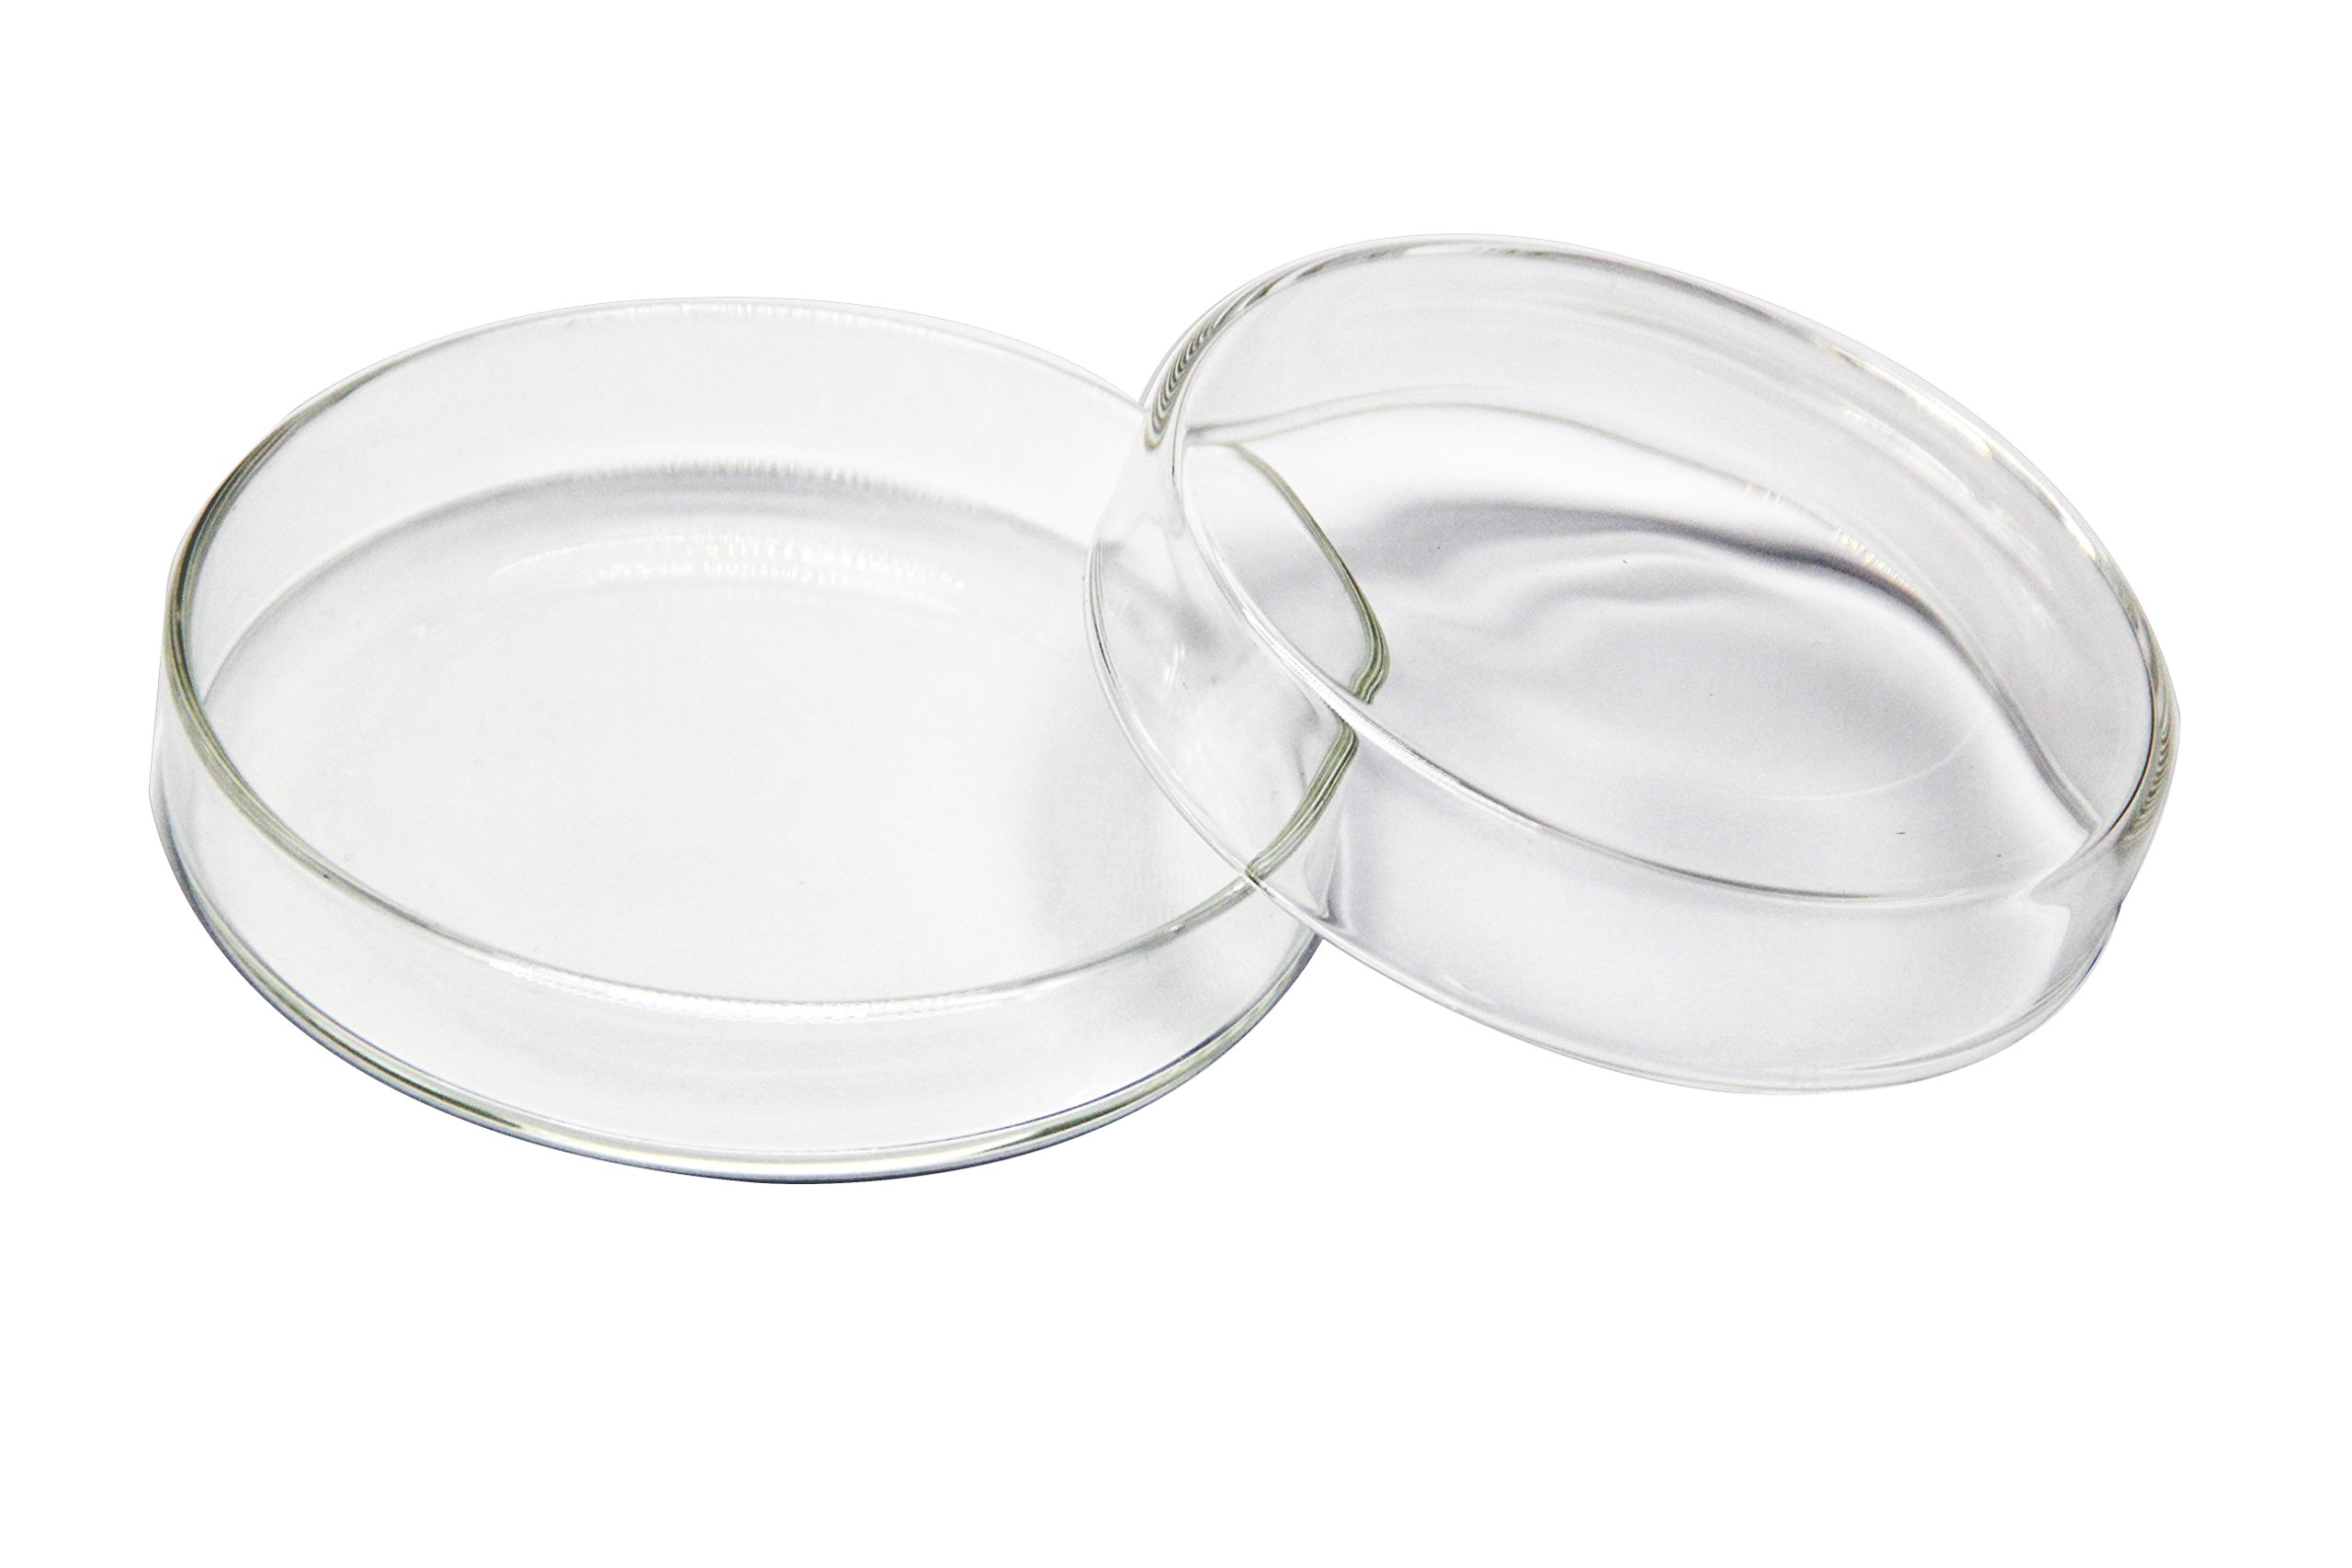 Huanyu 90mm High Borosilicate Glass Petri Dishes Bacterial Culture Dishes, a Pack of 5PCS